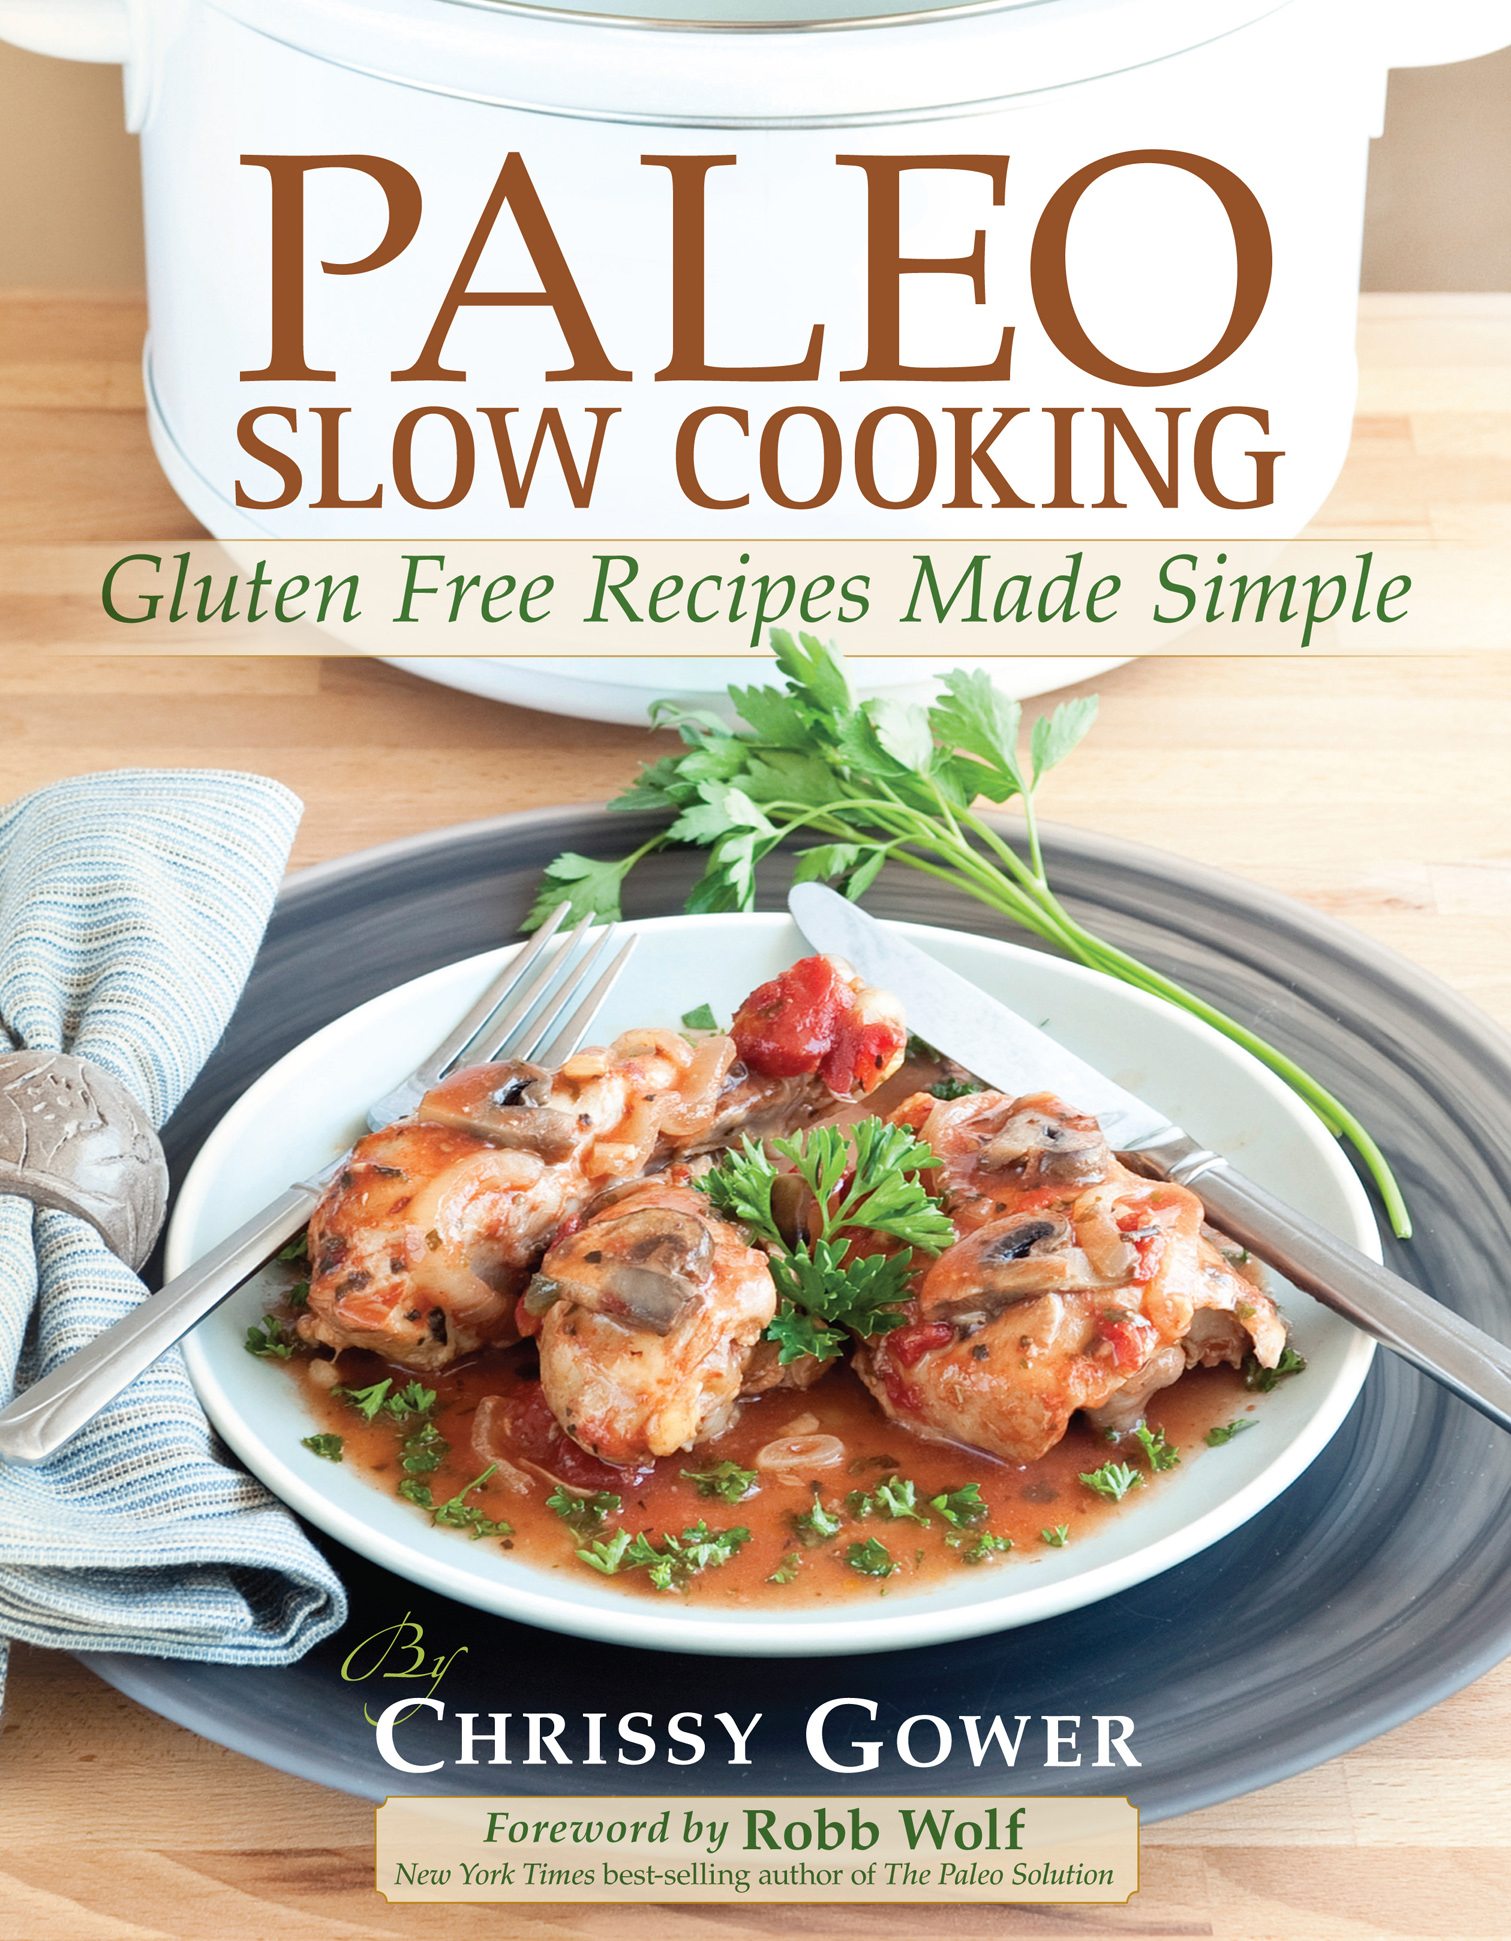 Paleo Slow Cooking: Gluten Free Recipes Made Simple By: Chrissy Gower